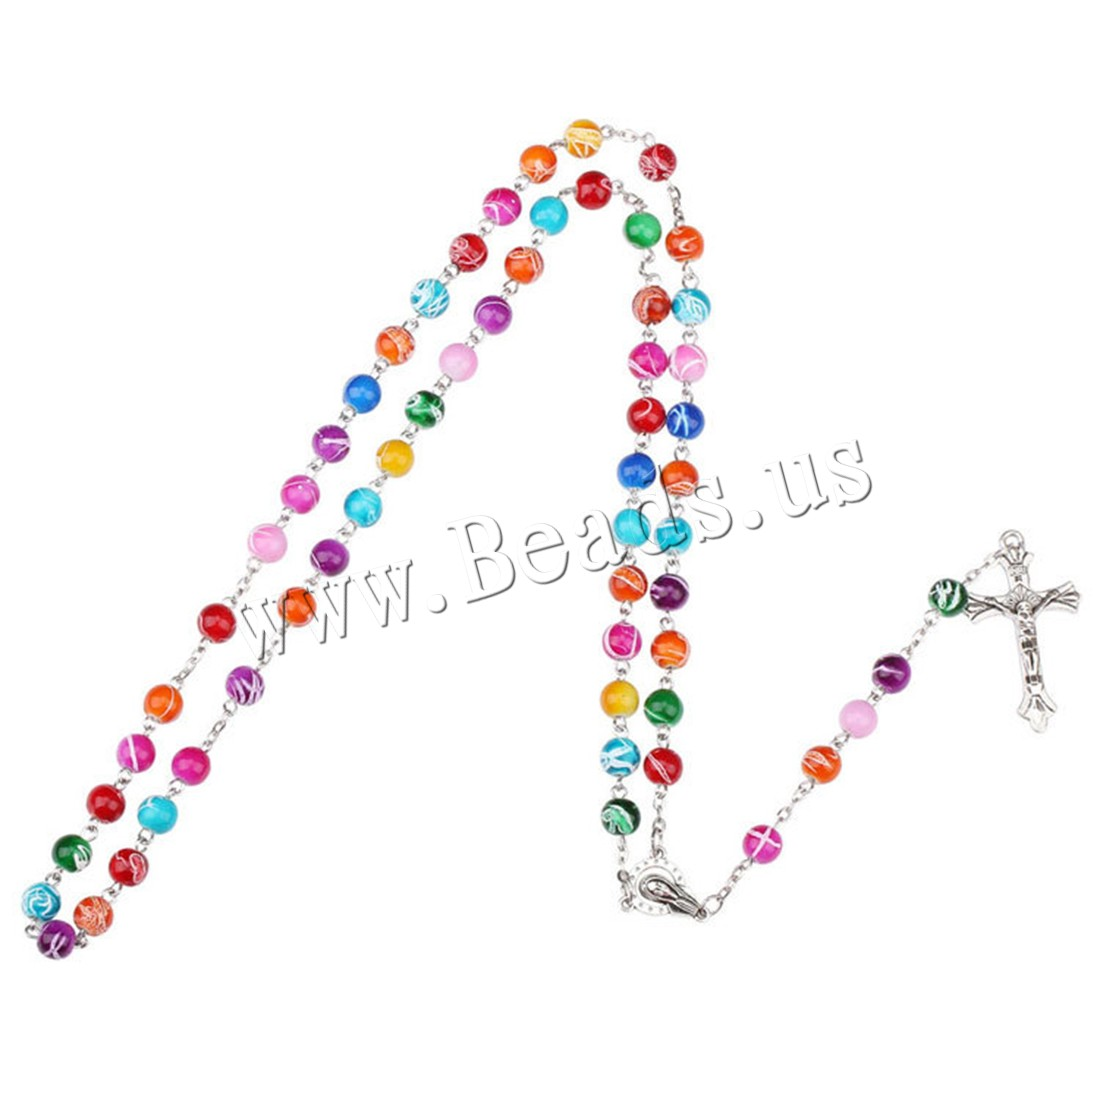 Buy Rosary Necklace Acrylic Zinc Alloy 5.9lnch extender chain Cross antique silver color plated Unisex 8mm Sold Per Approx 27.6 Inch Strand